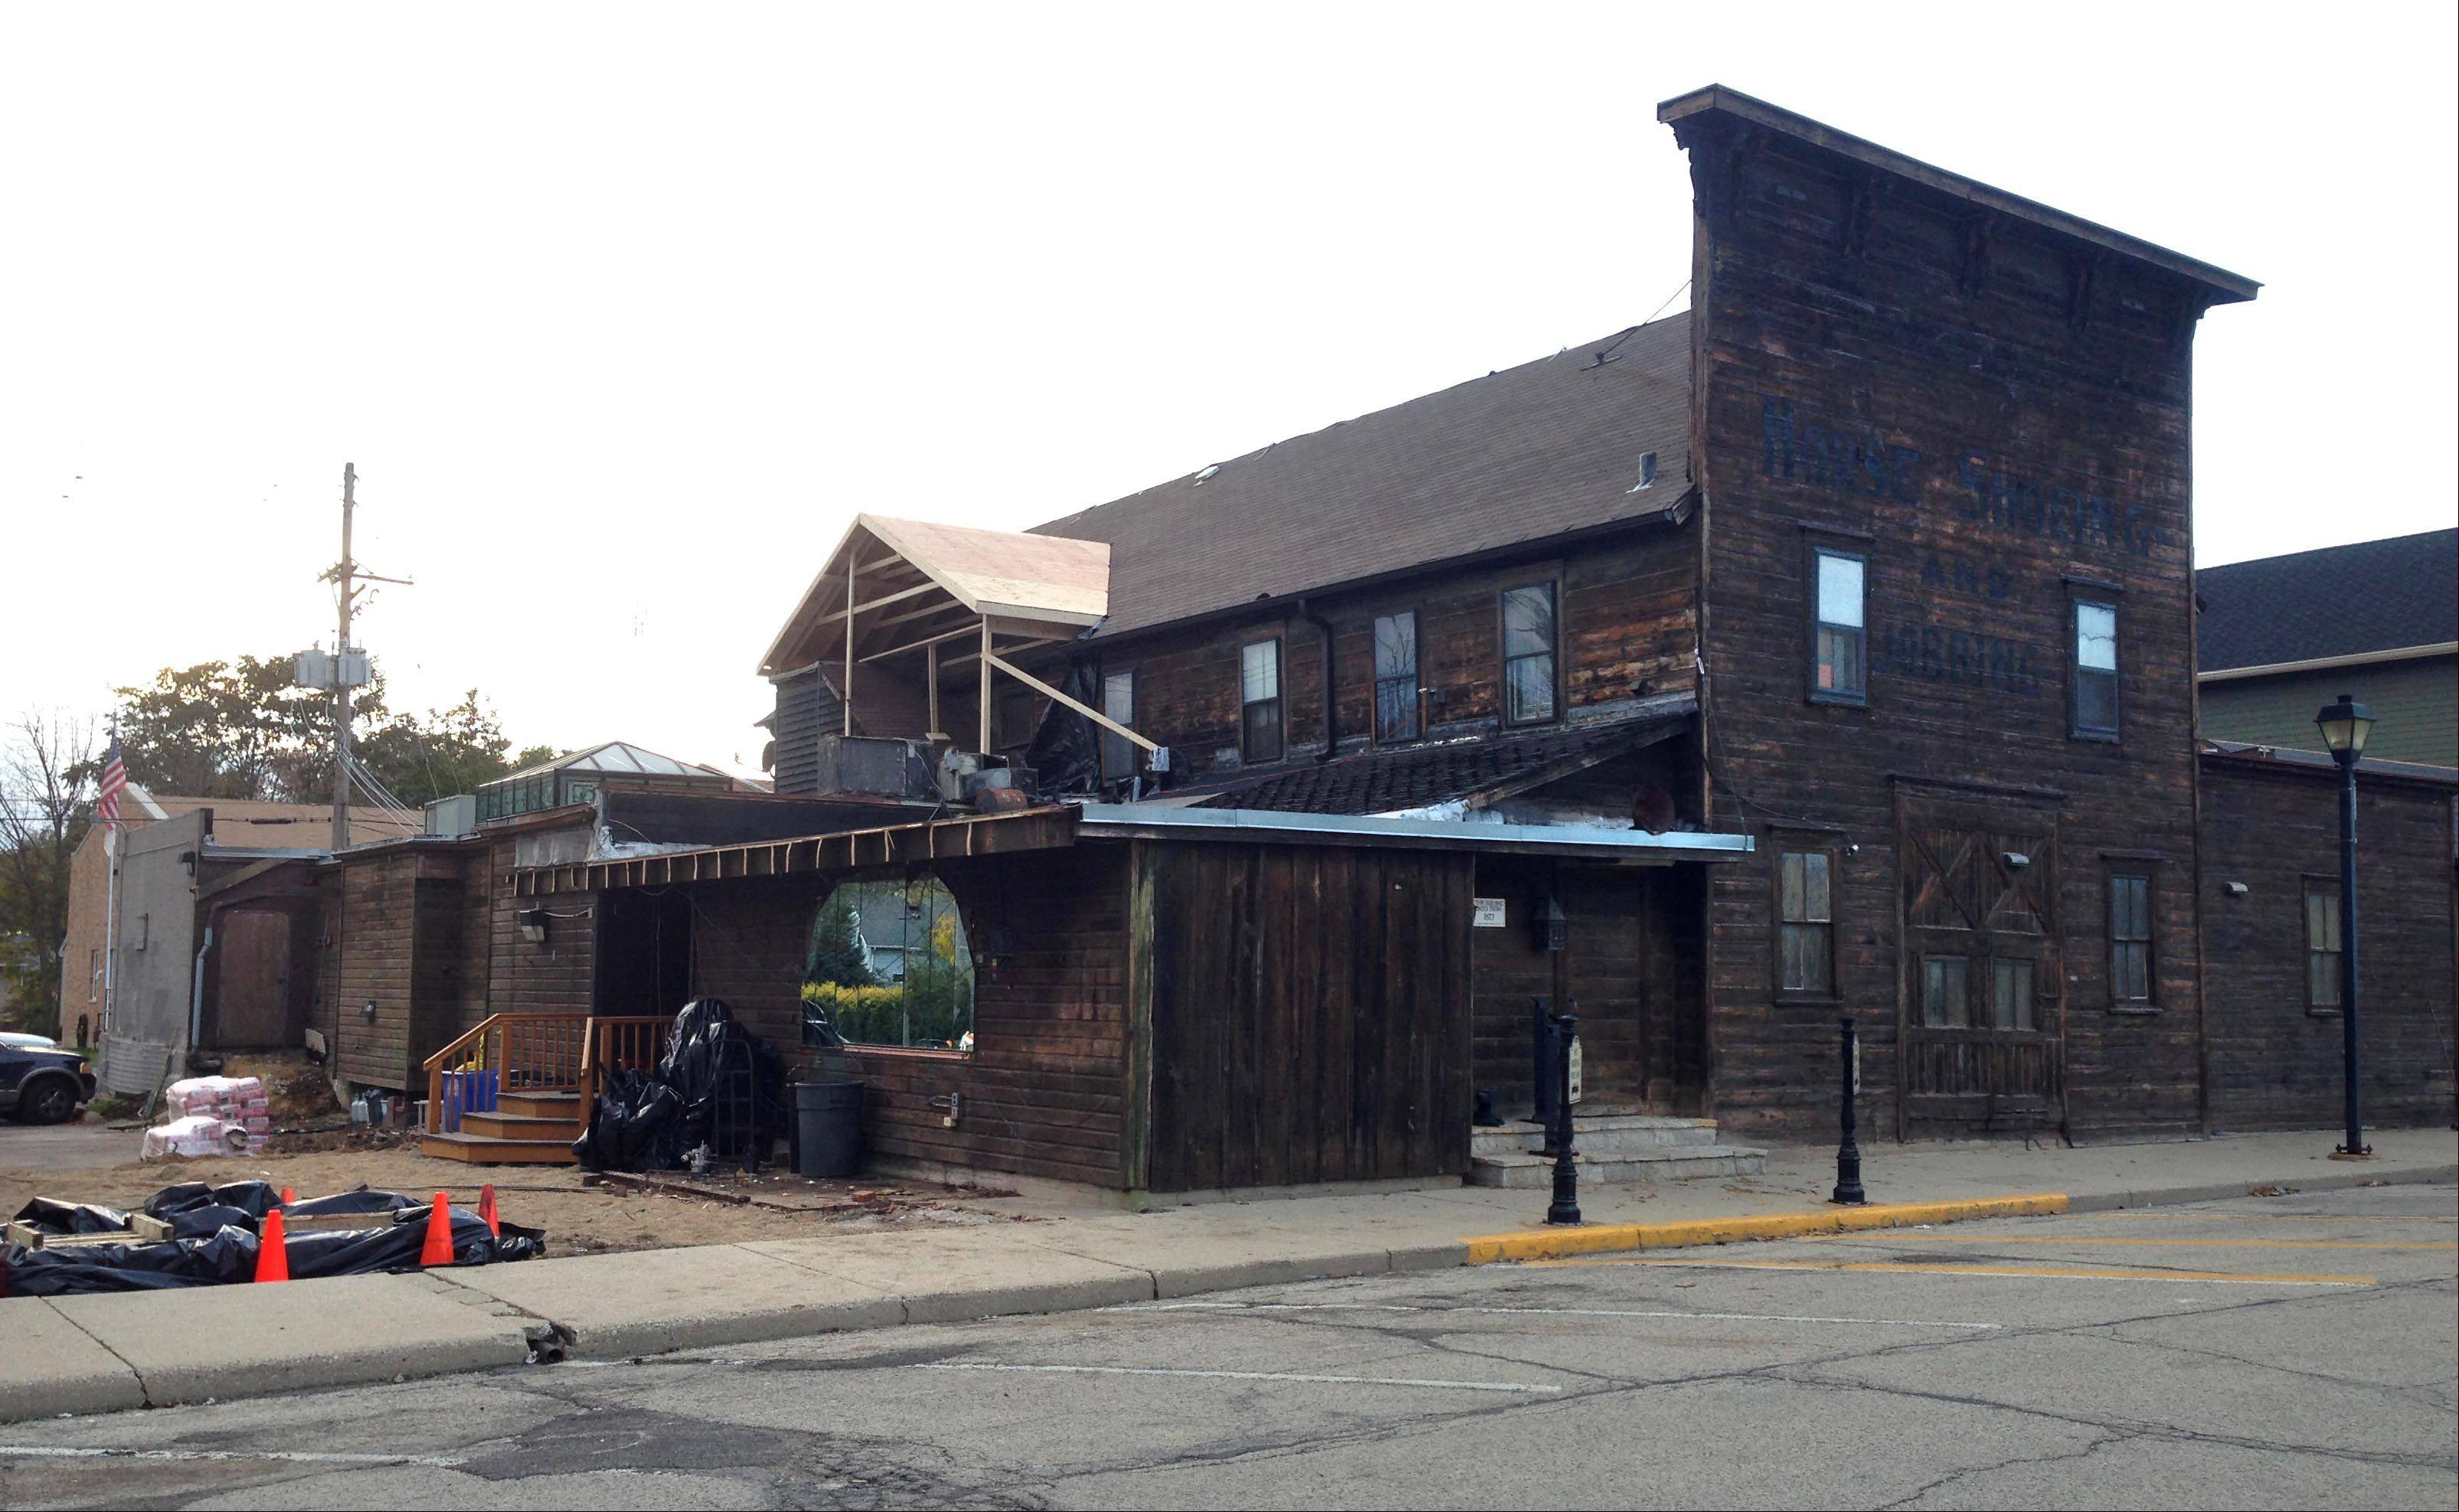 East Dundee is putting $416,000 toward renovations at the Anvil Club in East Dundee. The building belongs to Tom Roeser, president and CEO of Otto Engineering in Carpentersville. Roeser is spending more than $1 million to fix up the 57-year-old club and the money from East Dundee represents 40 percent of what he'll spend on the project.